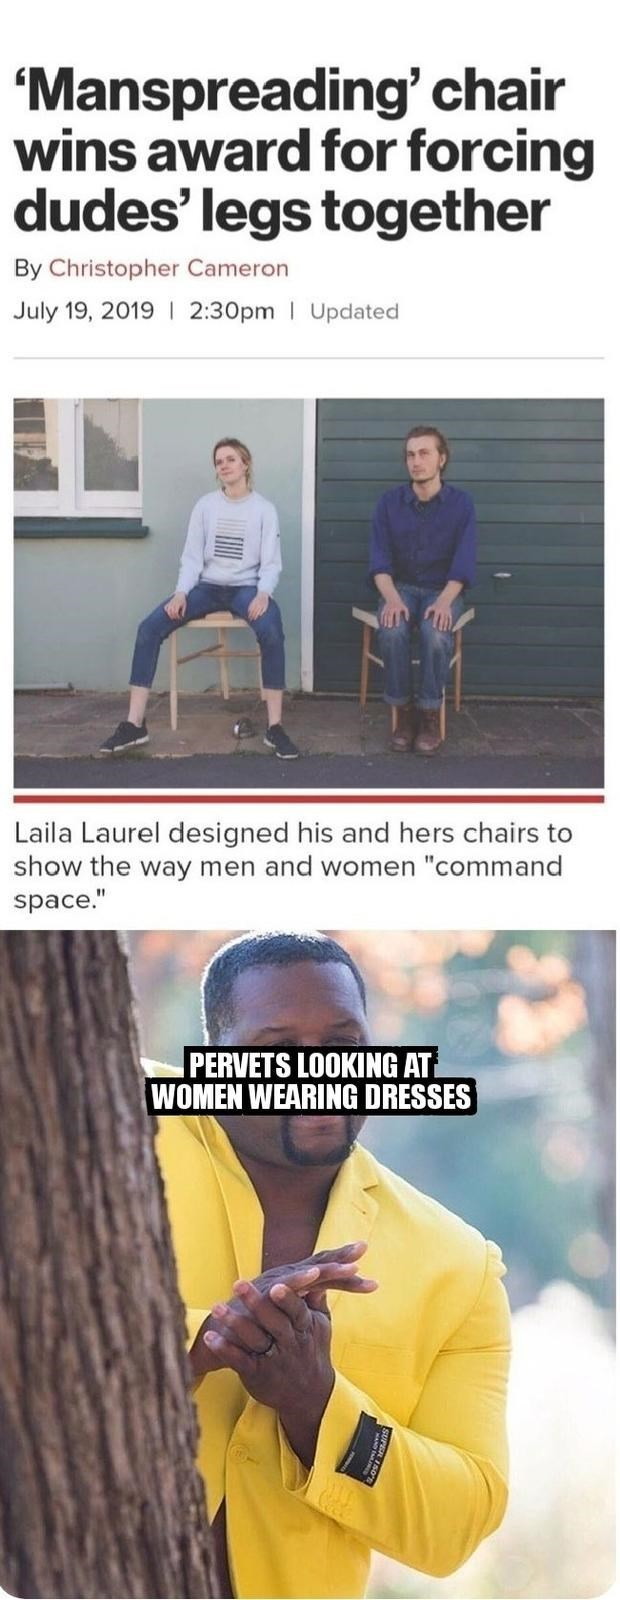 """Meme - 'Manspreading' chair wins award for forcing dudes' legs together By Christopher Cameron July 19, 2019 2:30pm Updated Laila Laurel designed his and hers chairs to show the way men and women """"command space."""" PERVETS LOOKING AT WOMEN WEARING DRESSES"""